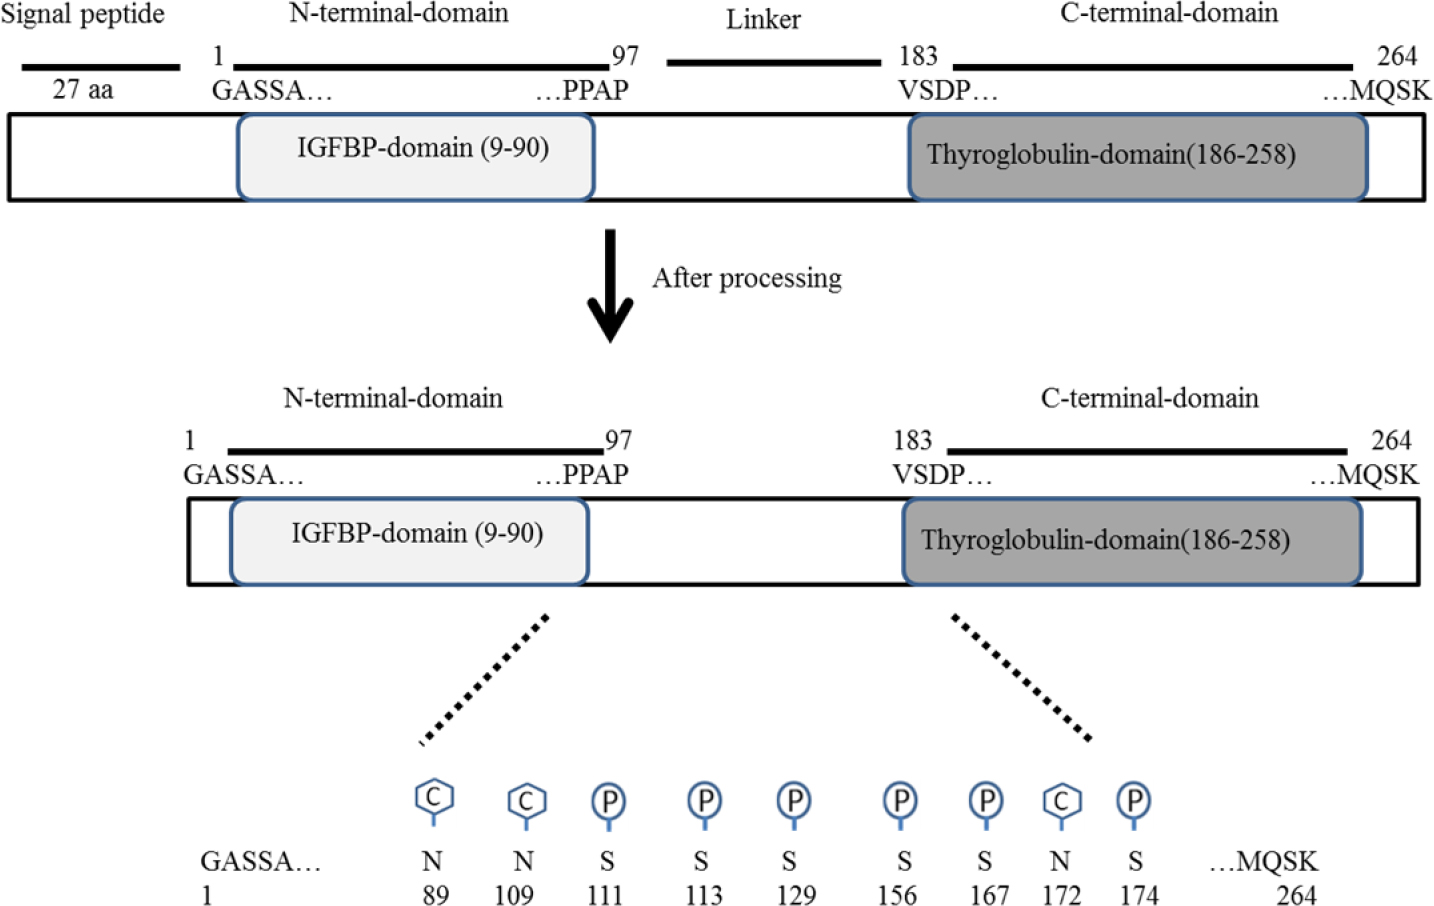 In Silico Interaction Of Insulin Like Growth Factor Binding Protein Sap 1 Circuit Diagram Figure Schematic 3 Igfbp And Its Domains Which Are Processed To Mature Form